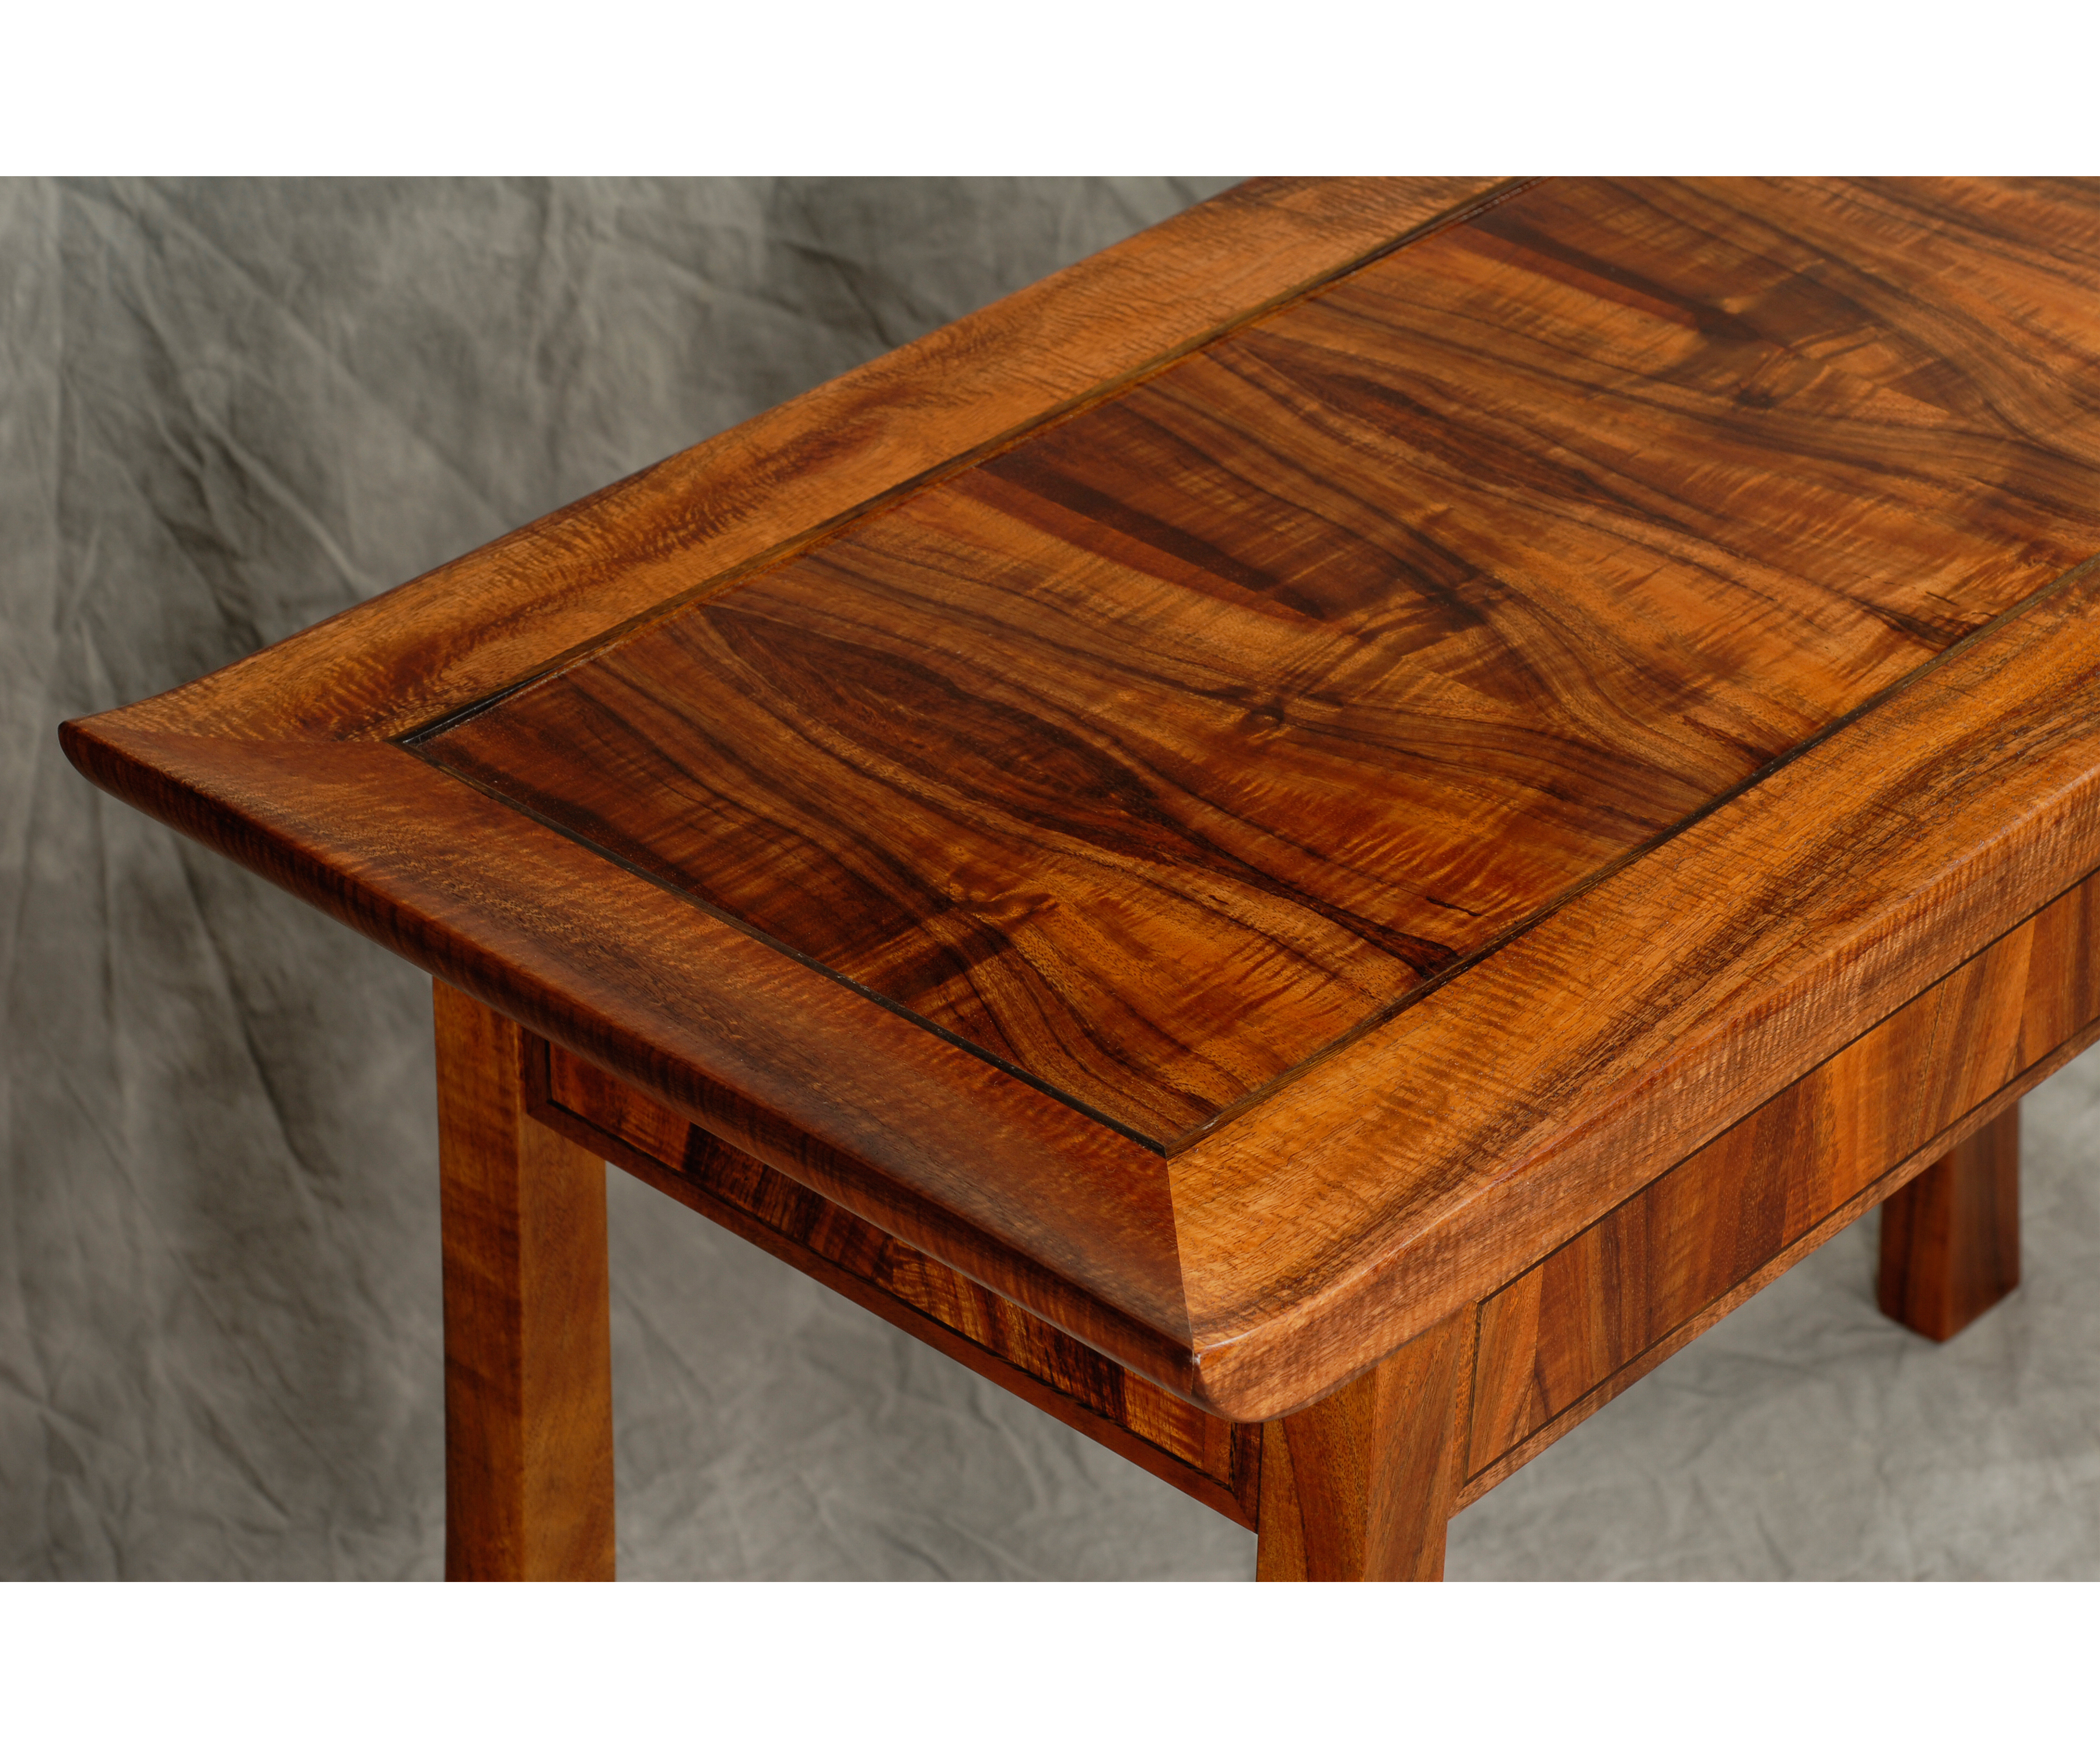 Koa and Blown Glass Entryway Table